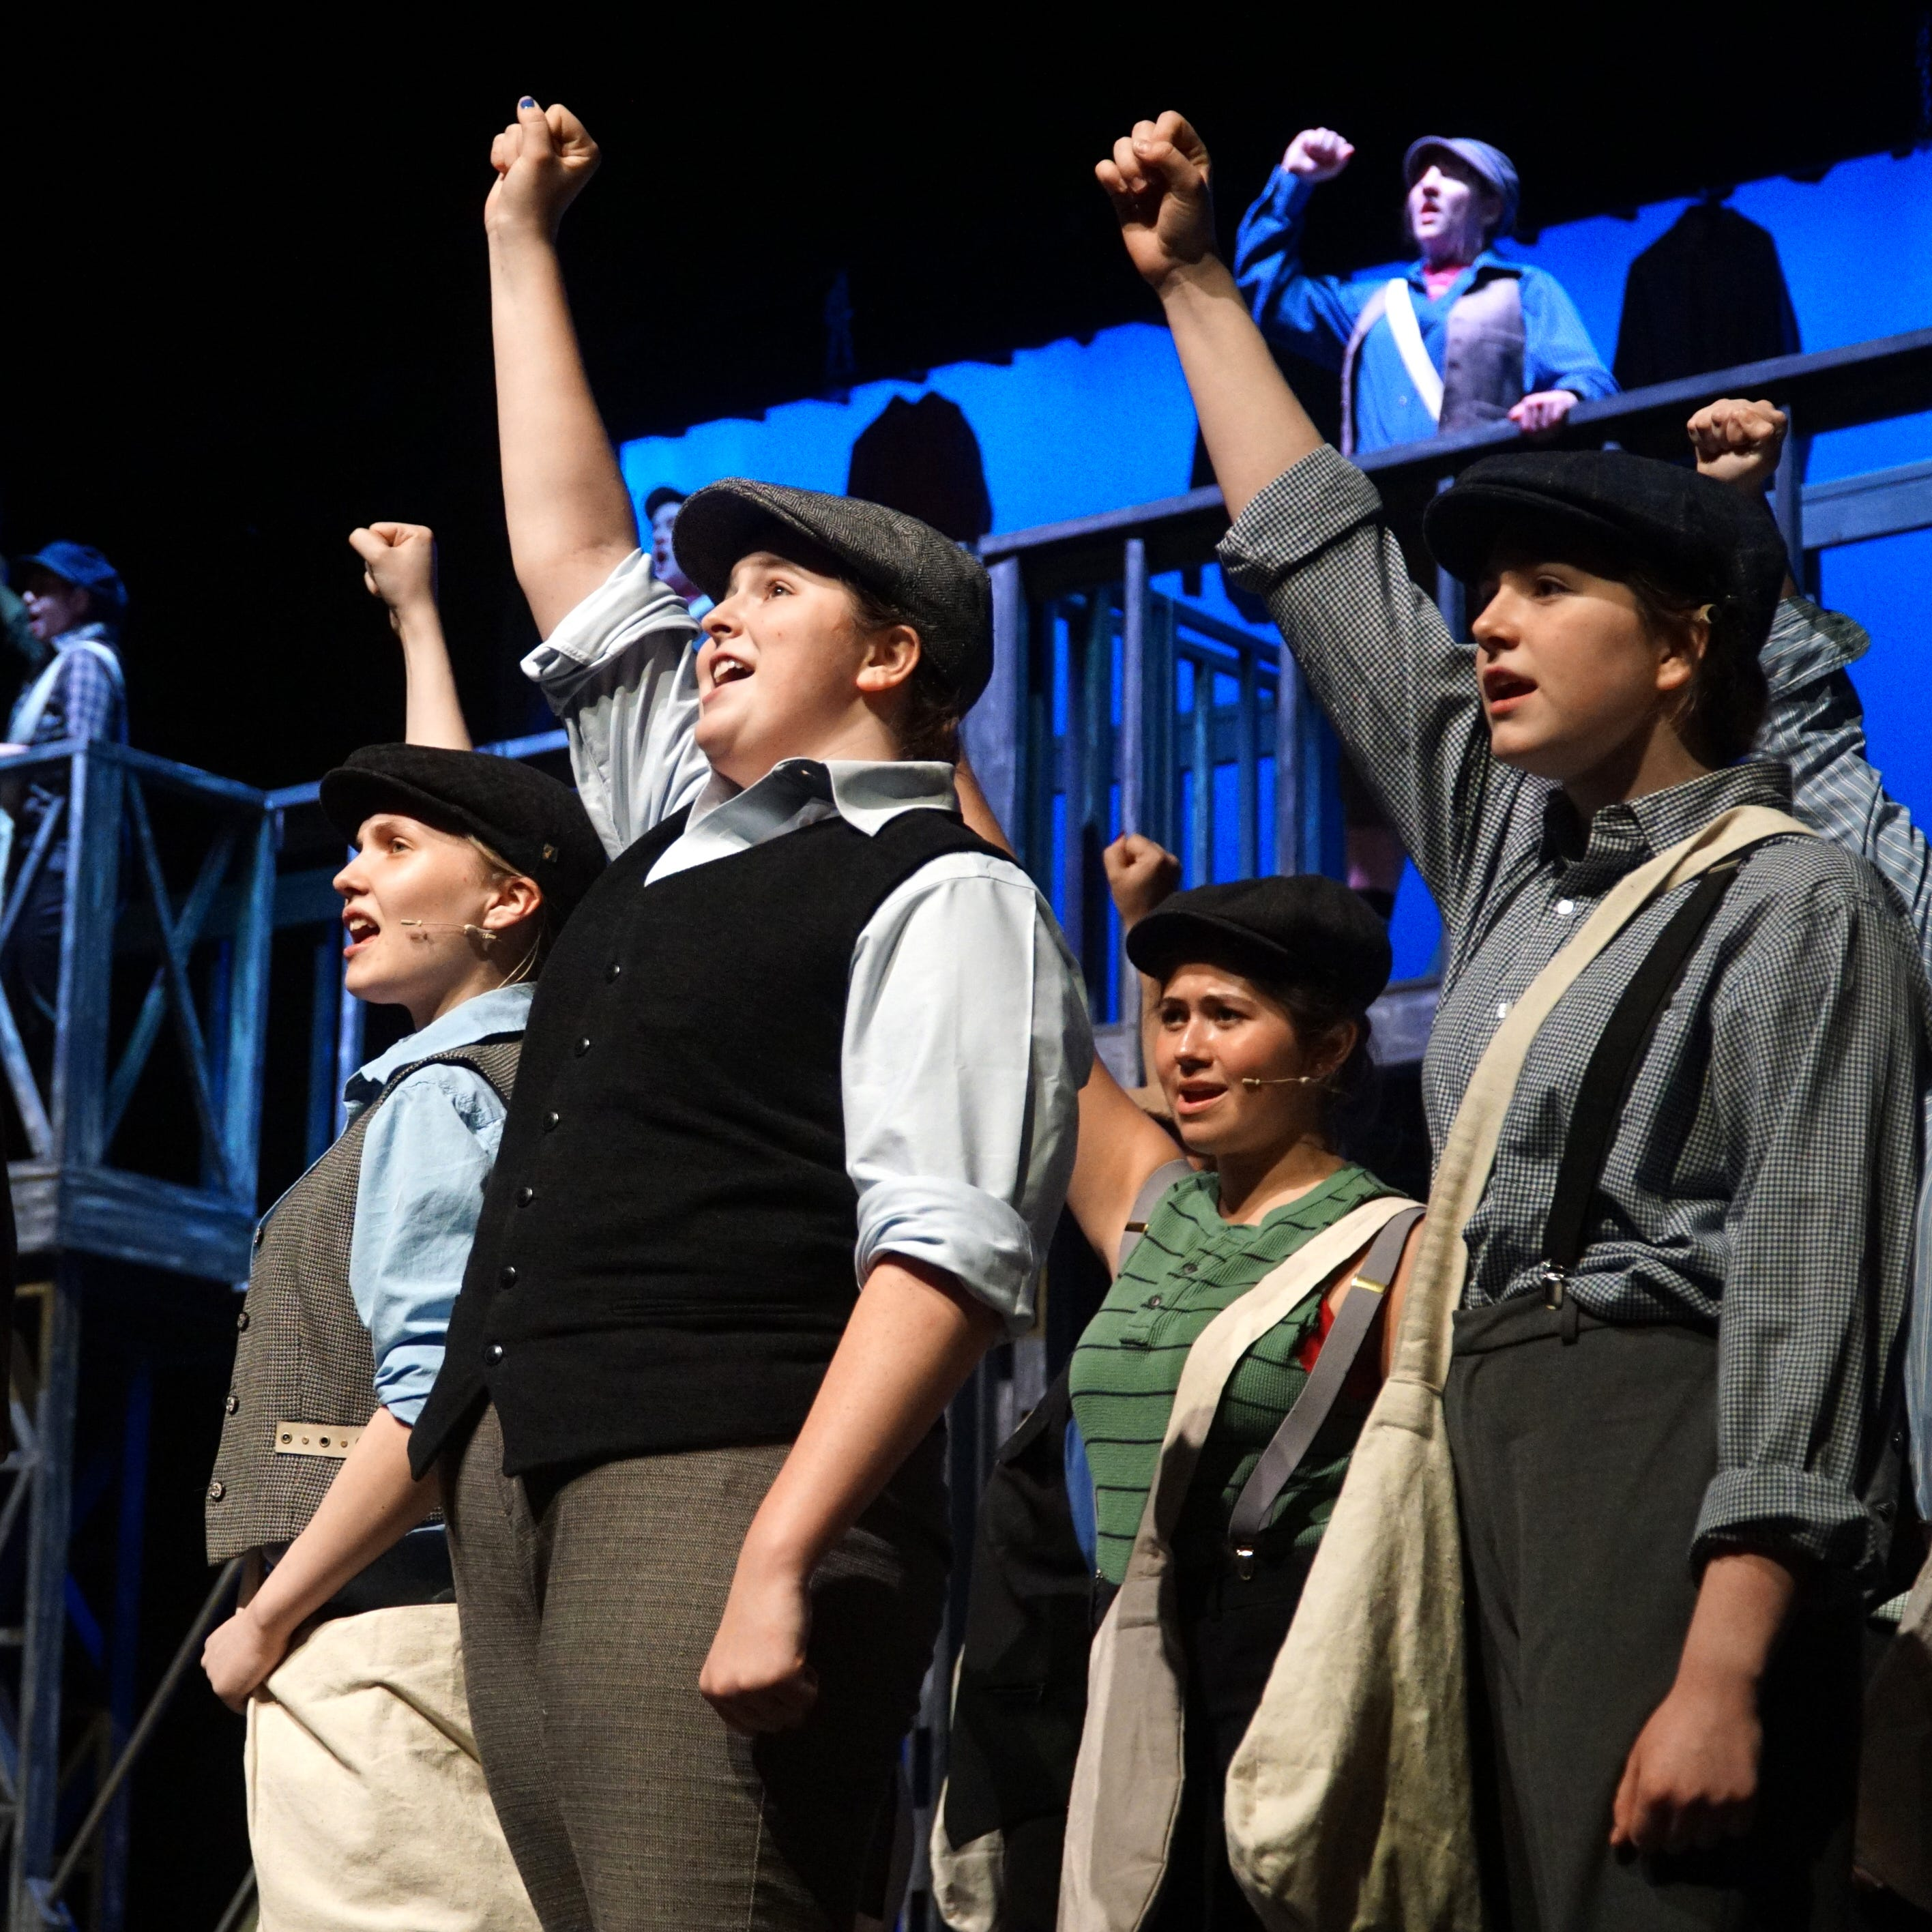 South Lyon East presents 'Newsies' on stage